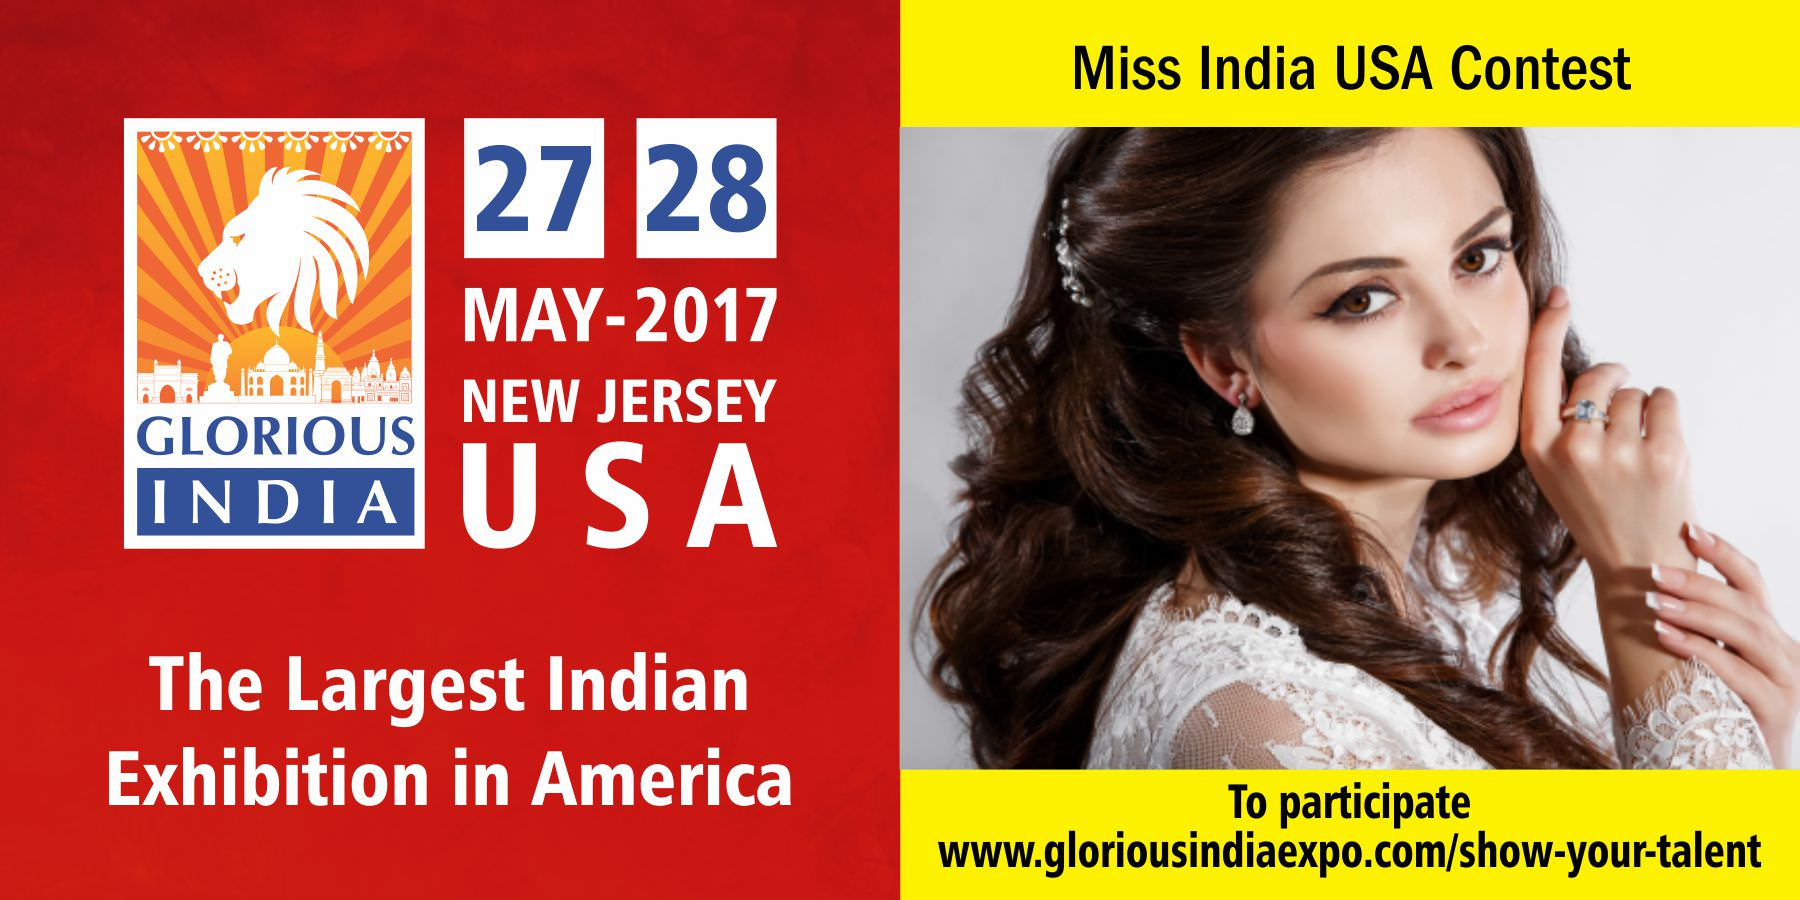 Glorious India Expo - Miss India USA Contest